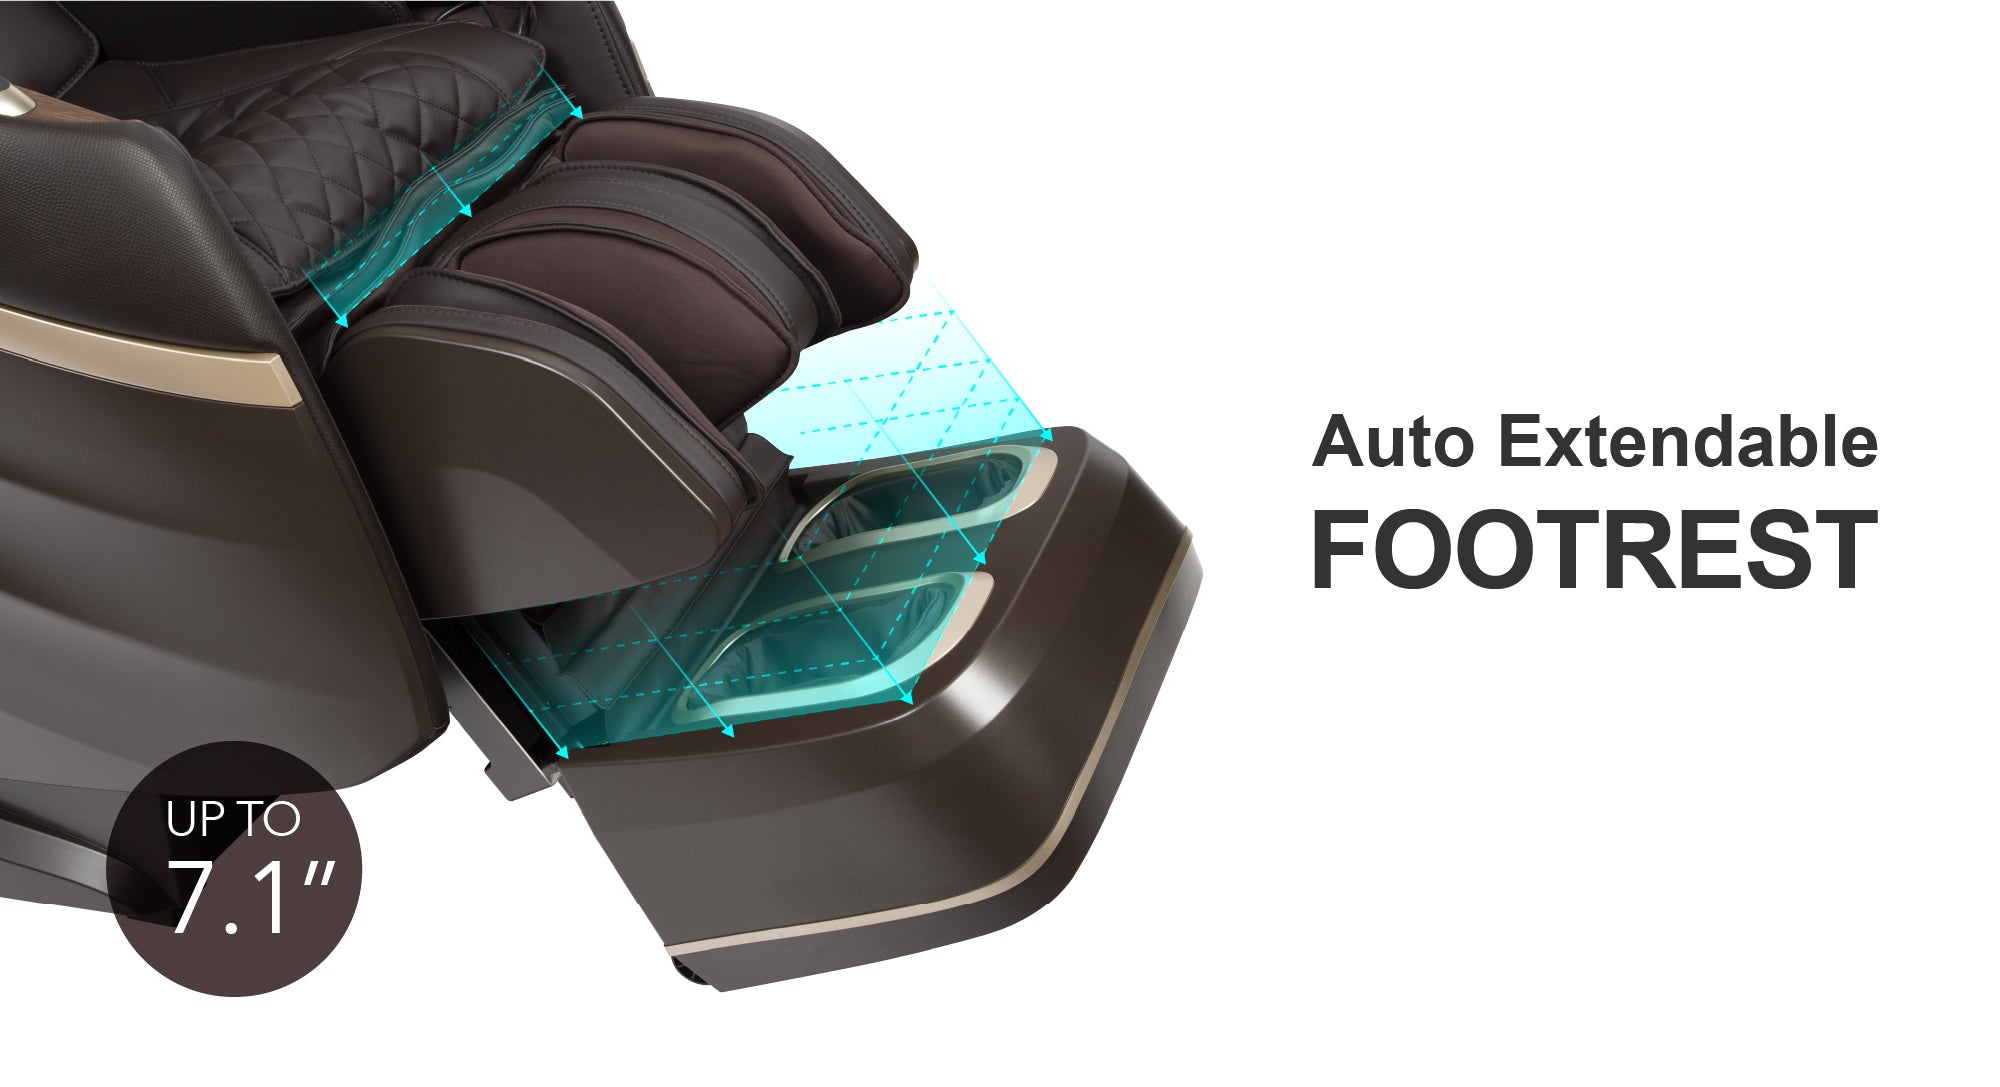 Auto Extendable Footrest